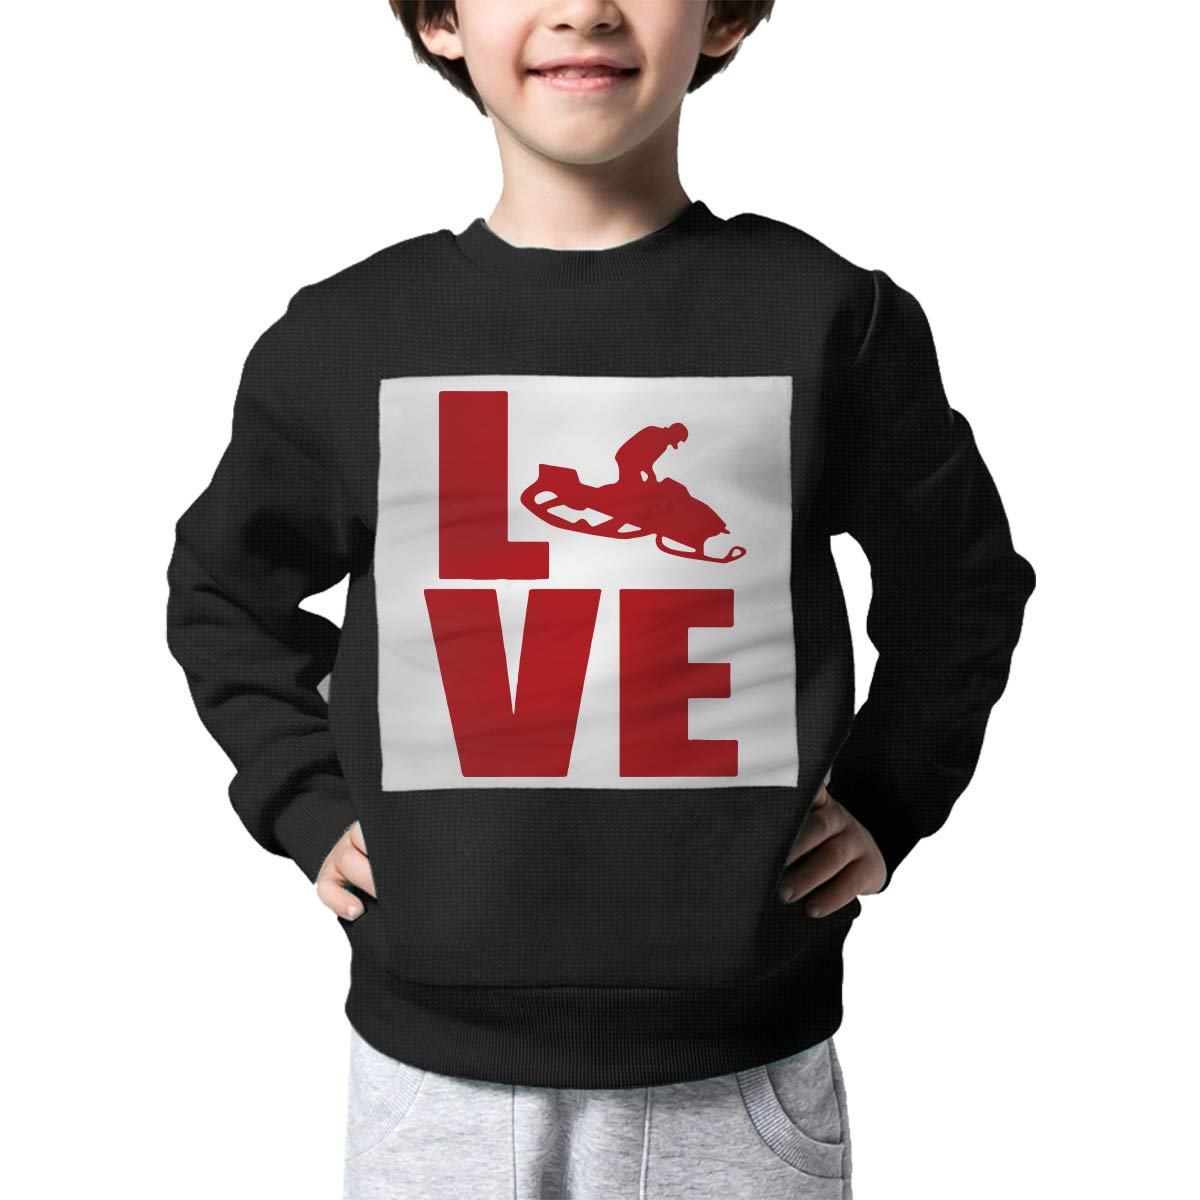 Childrens Love Snowmobile Sweater Boys Girls Outerwear